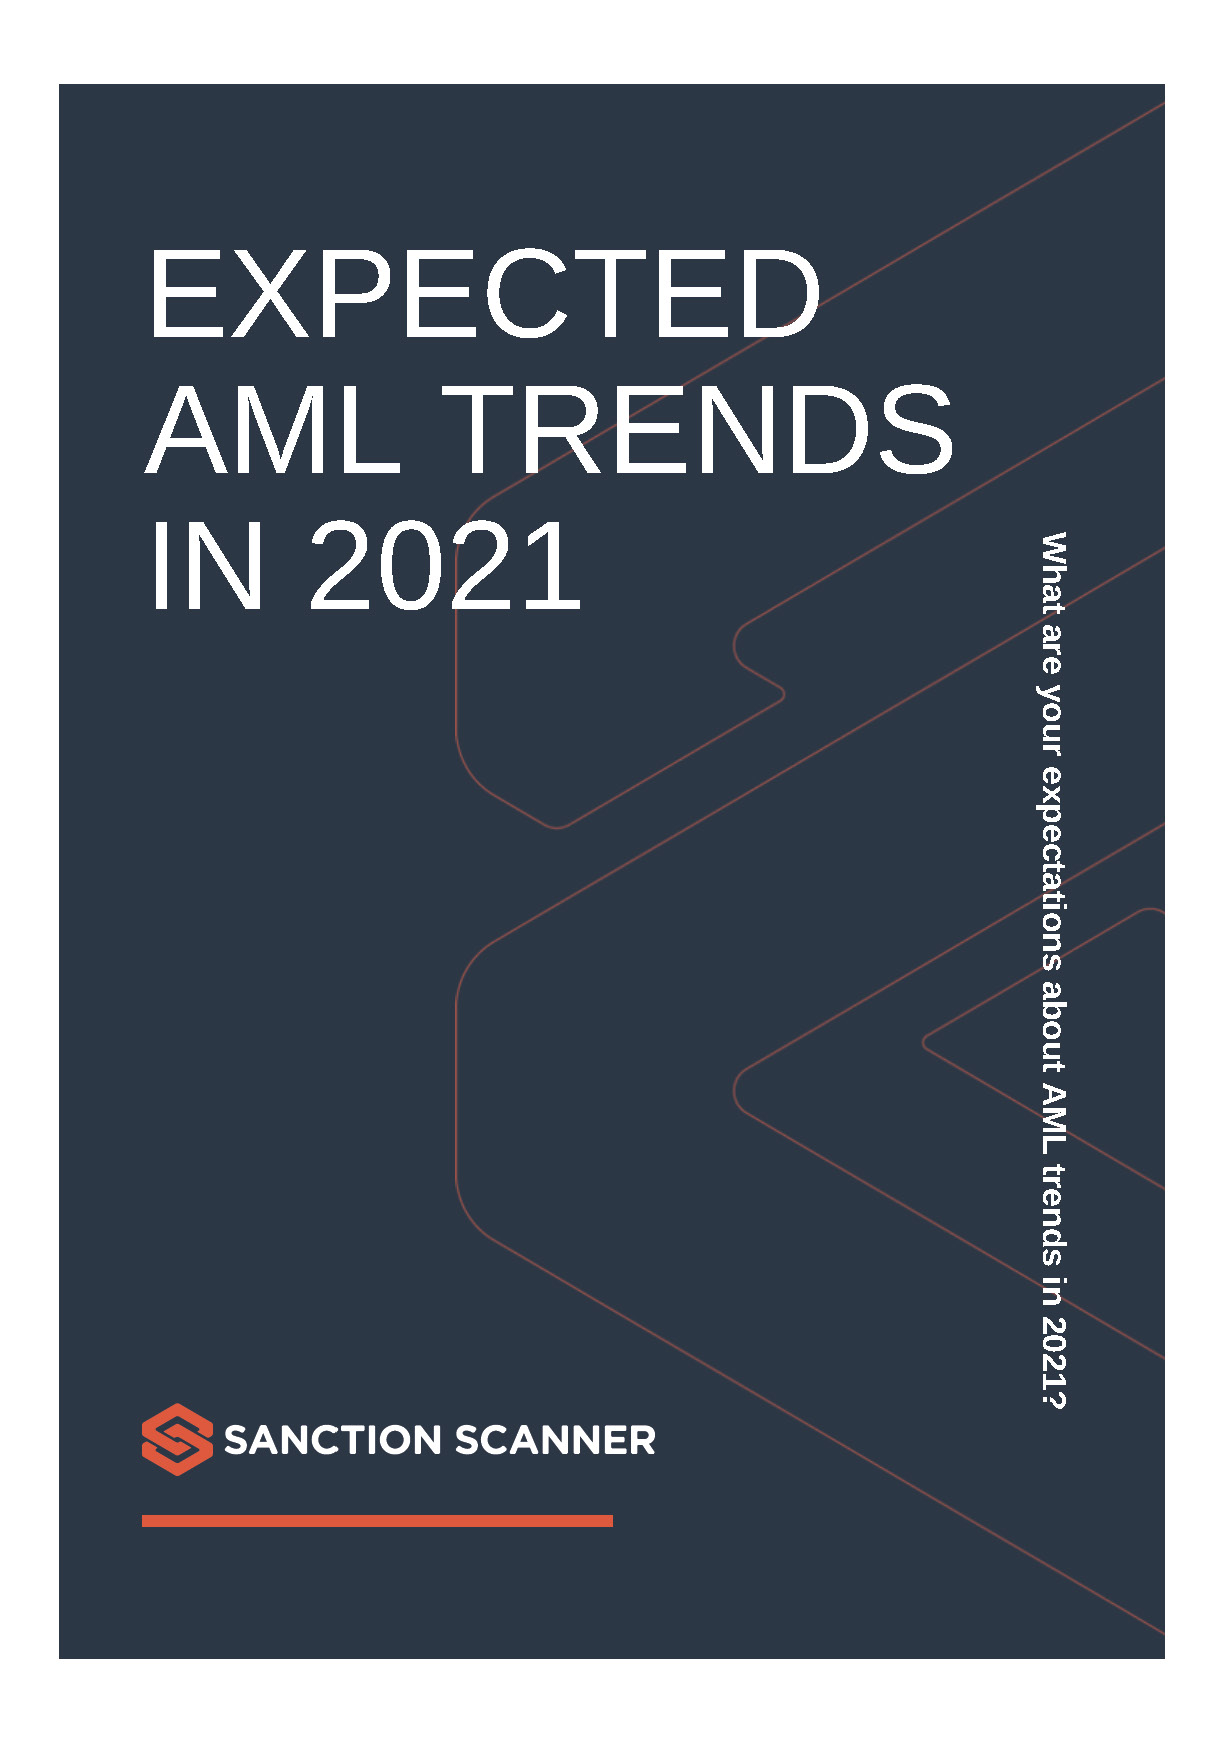 2021 AML Trend Foresights for 28 Experts from 17 Different Countries 18